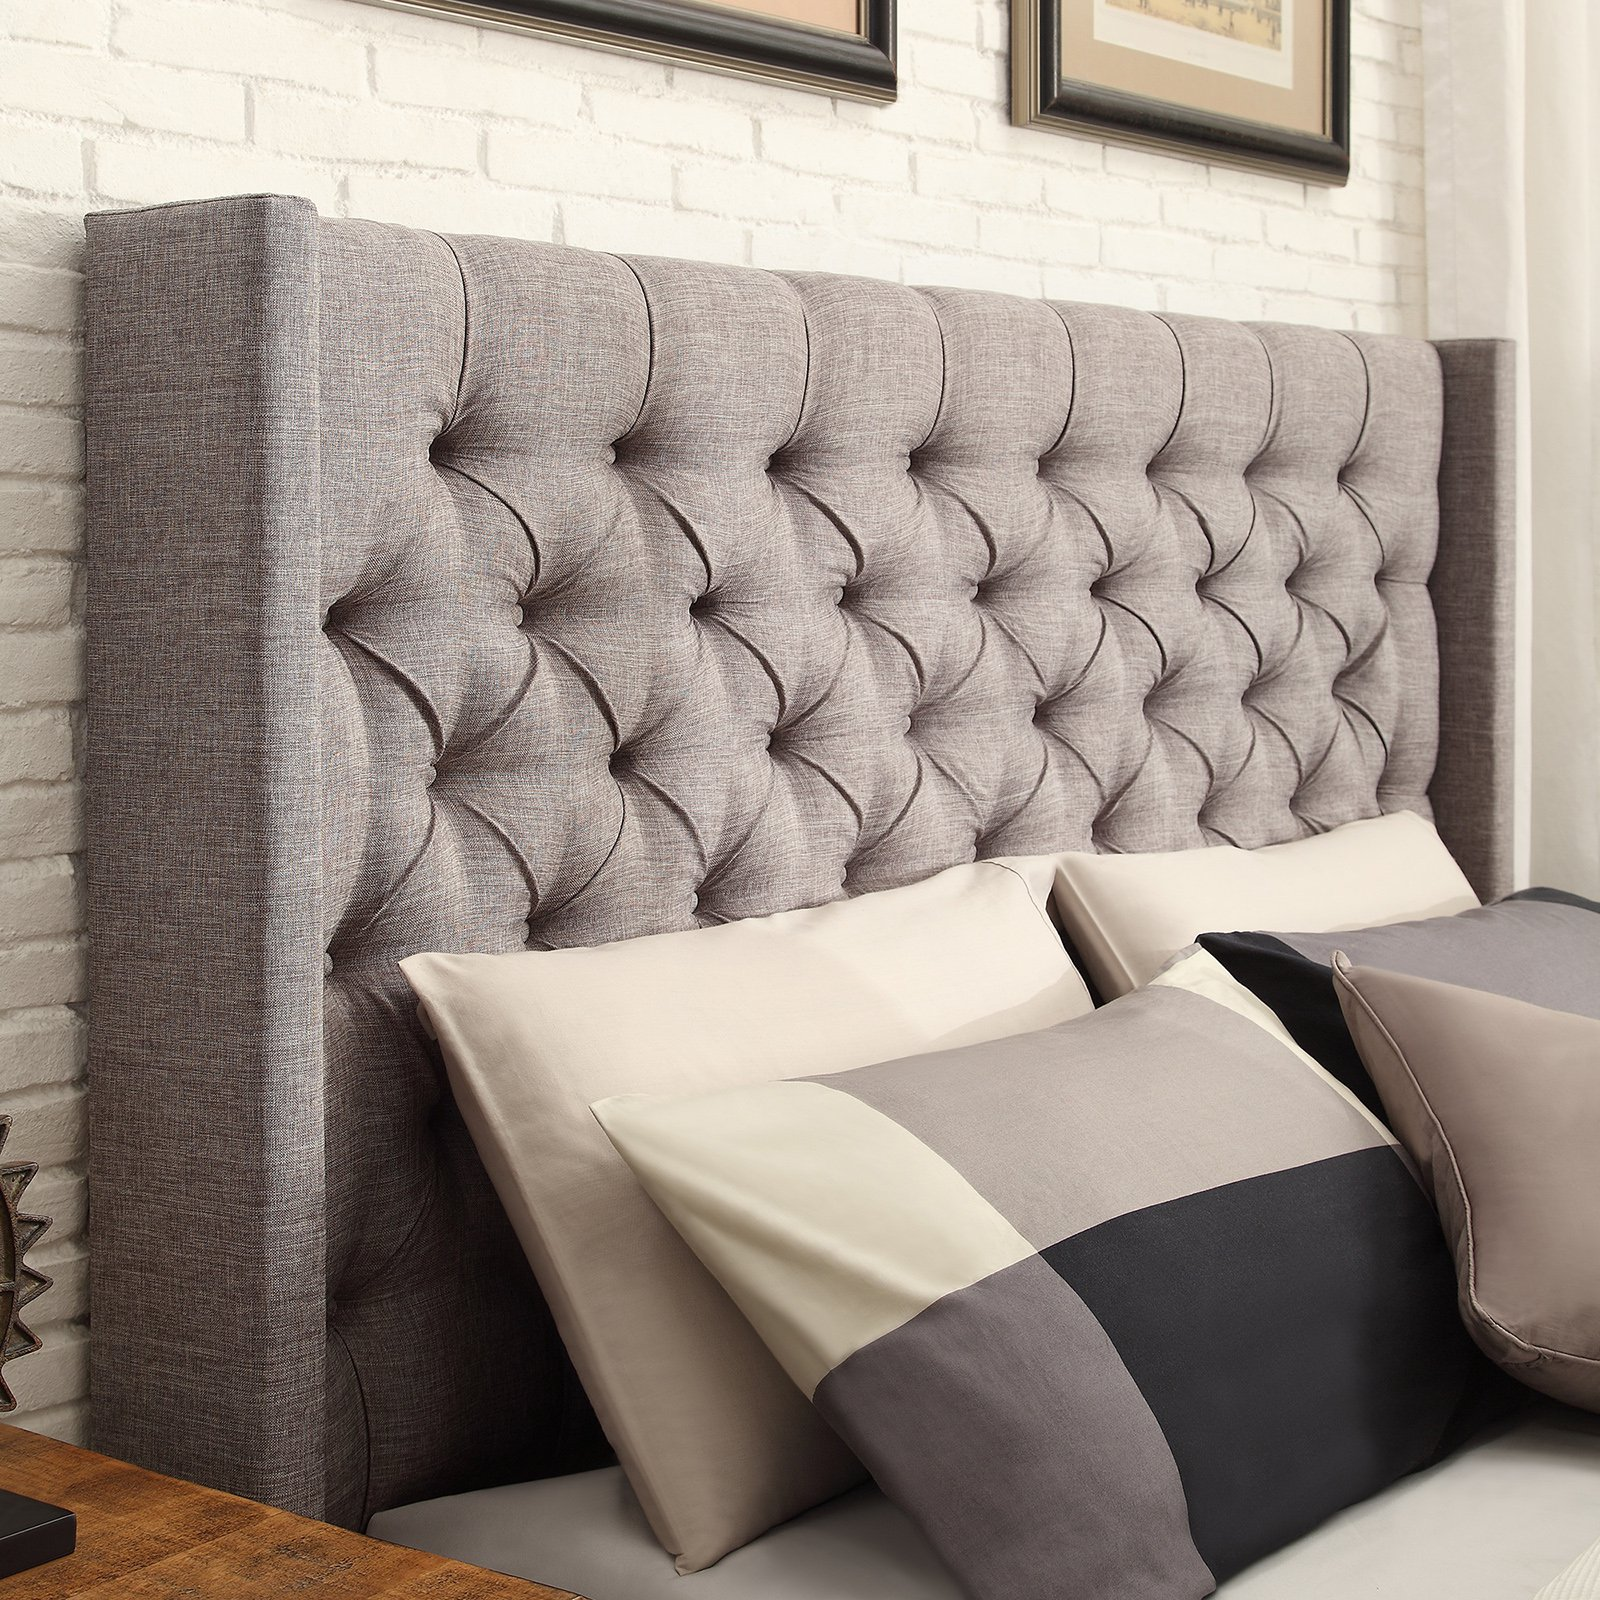 weston home yarmouth wingback upholstered low profile bed